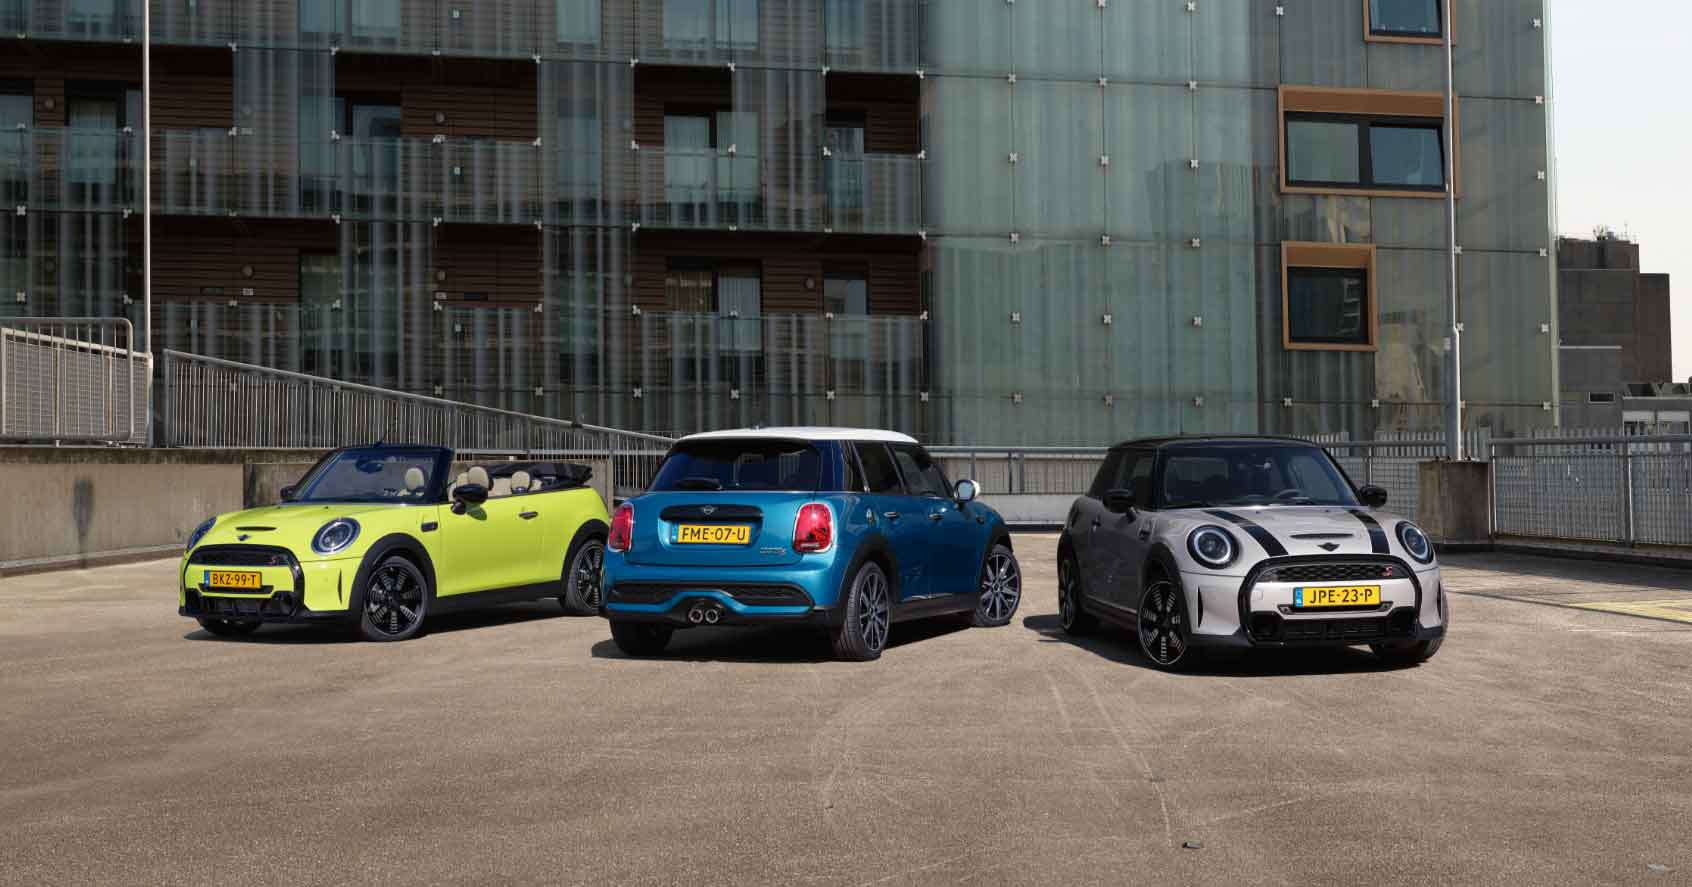 Abu Dhabi Motors welcomes the all-new MINI Hatch and MINI Convertible to the capital